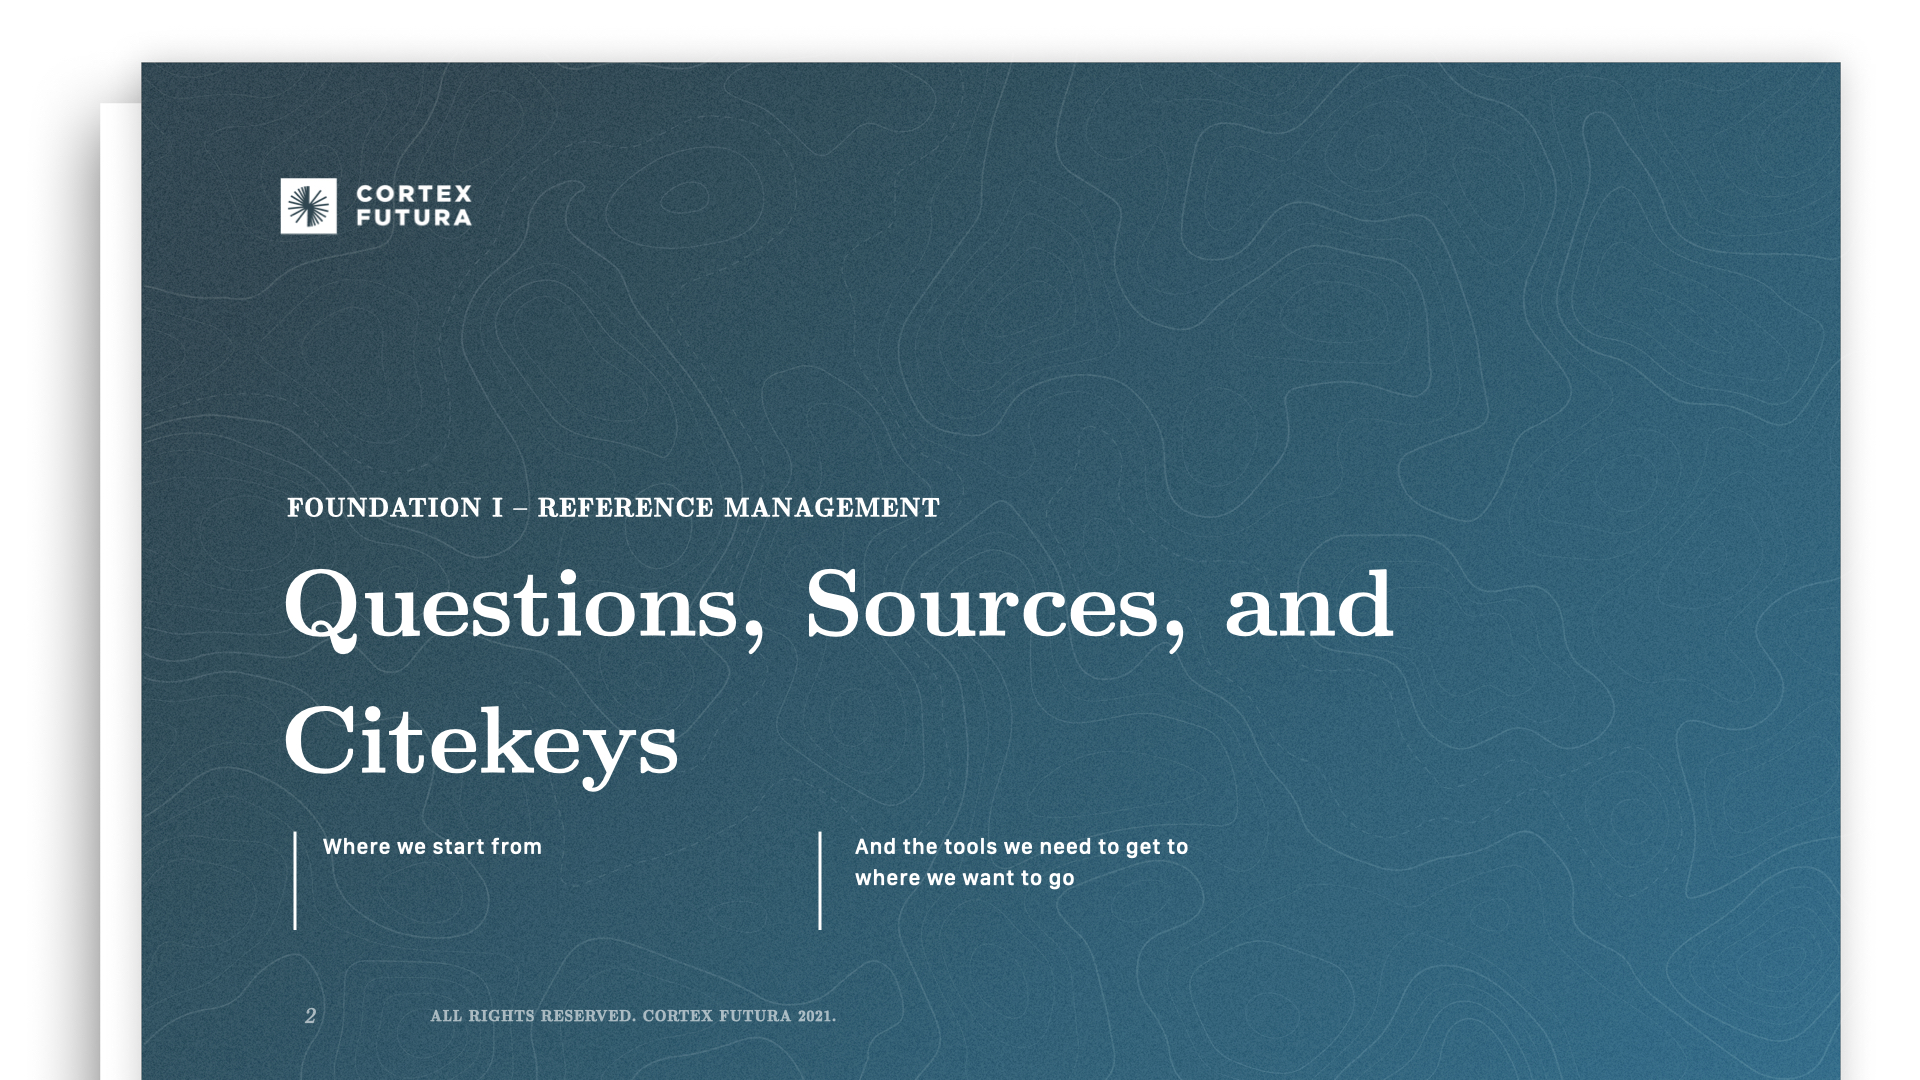 Questions, Sources, and Citekeys